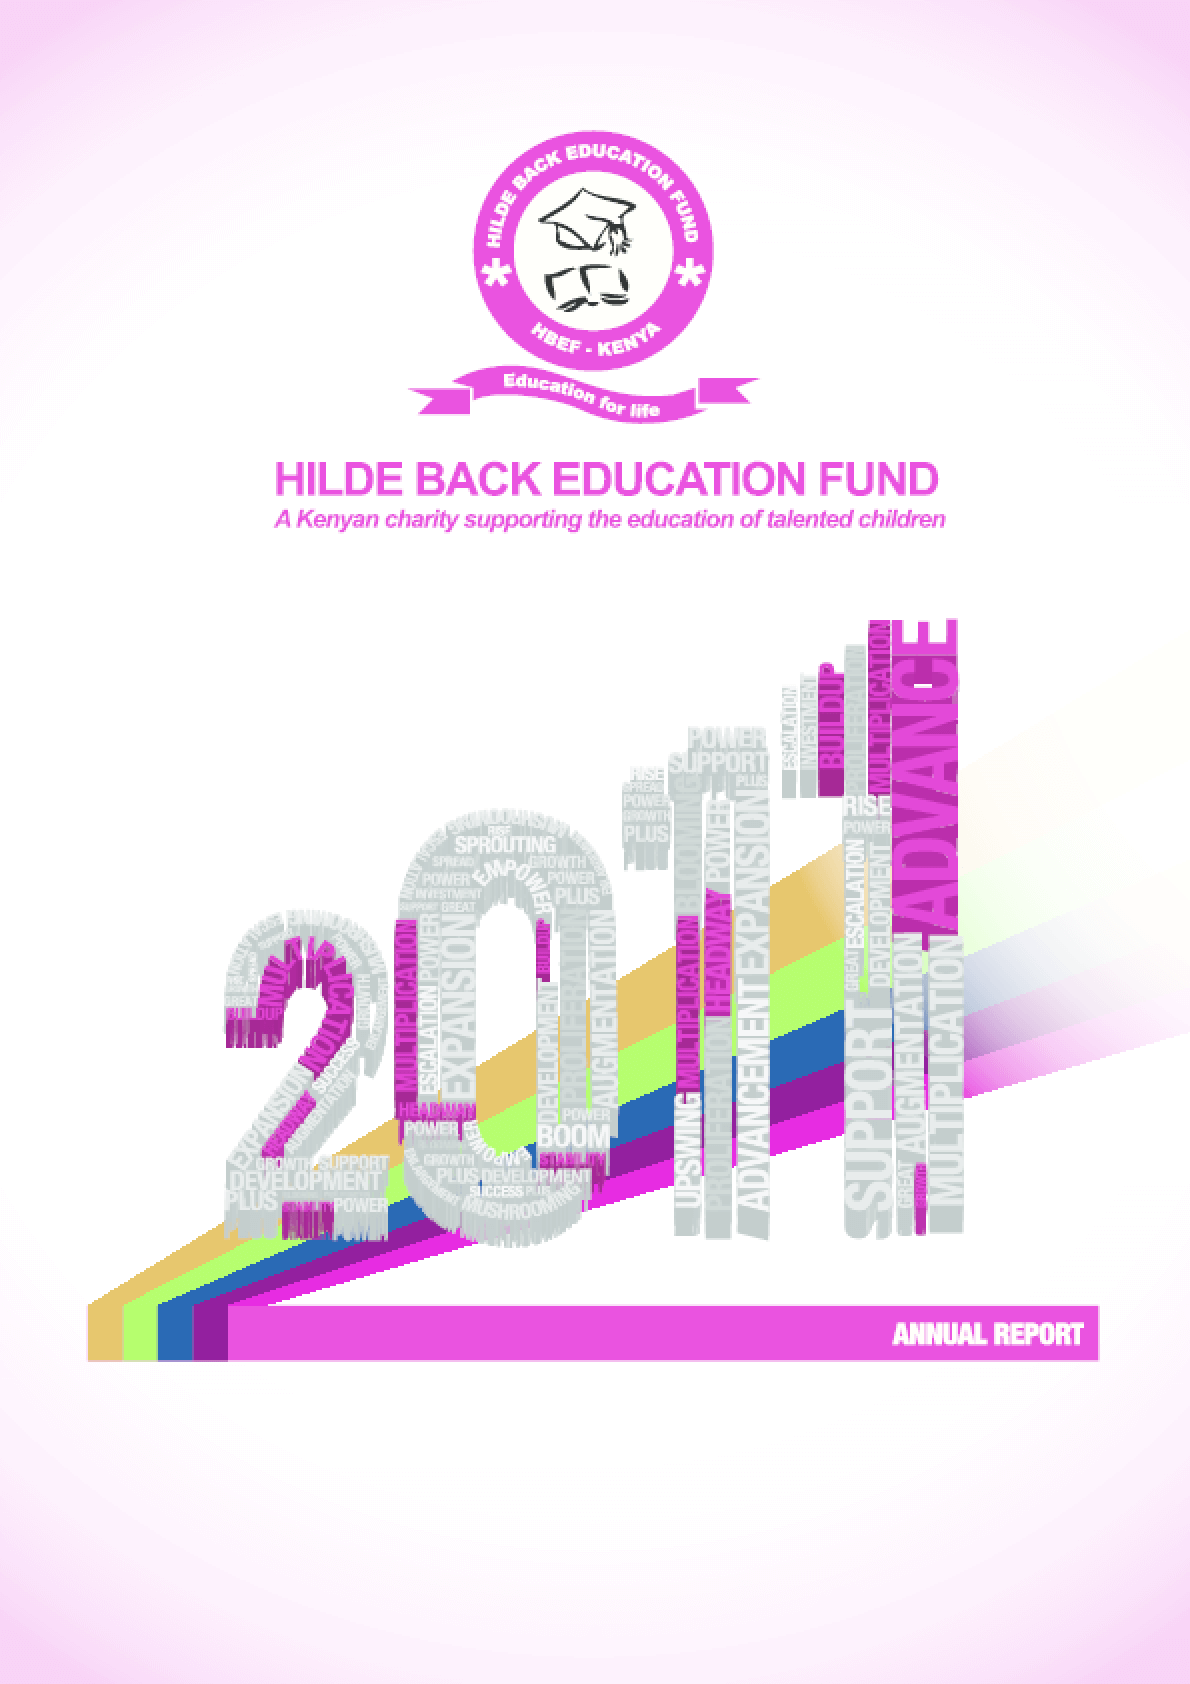 Hilde Back Education Fund 2011 Annual Report